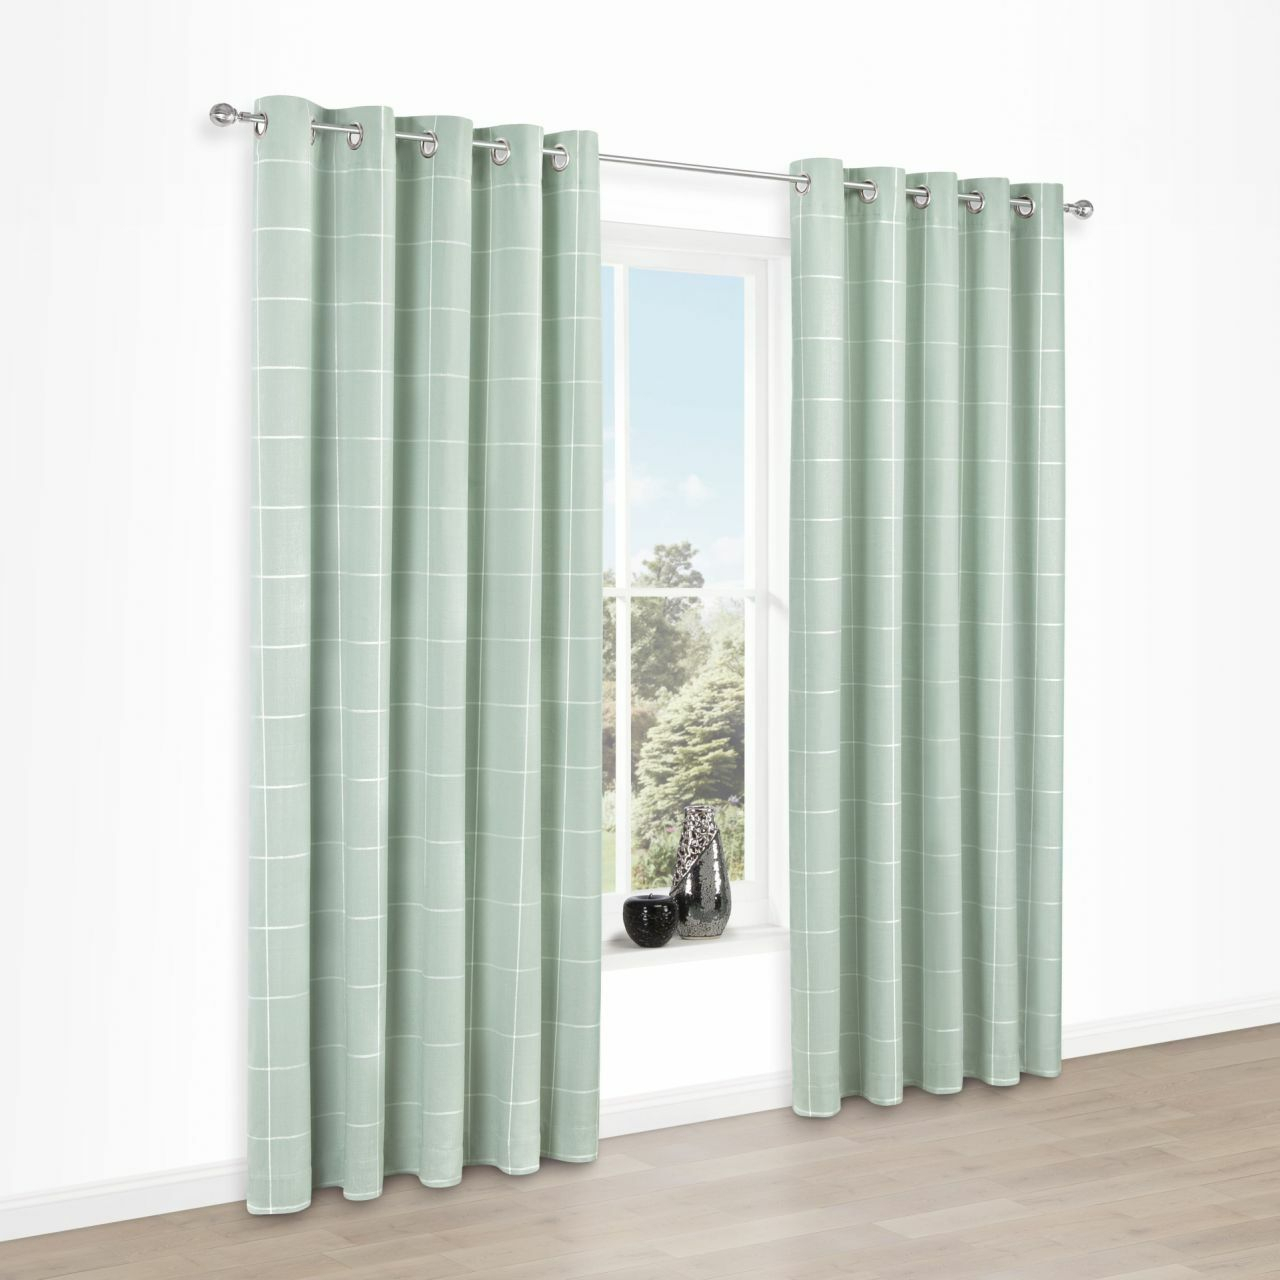 Mint Green Curtains – V9oj For Modern Subtle Texture Solid White Kitchen Curtain Parts With Grommets Tier And Valance Options (View 17 of 20)